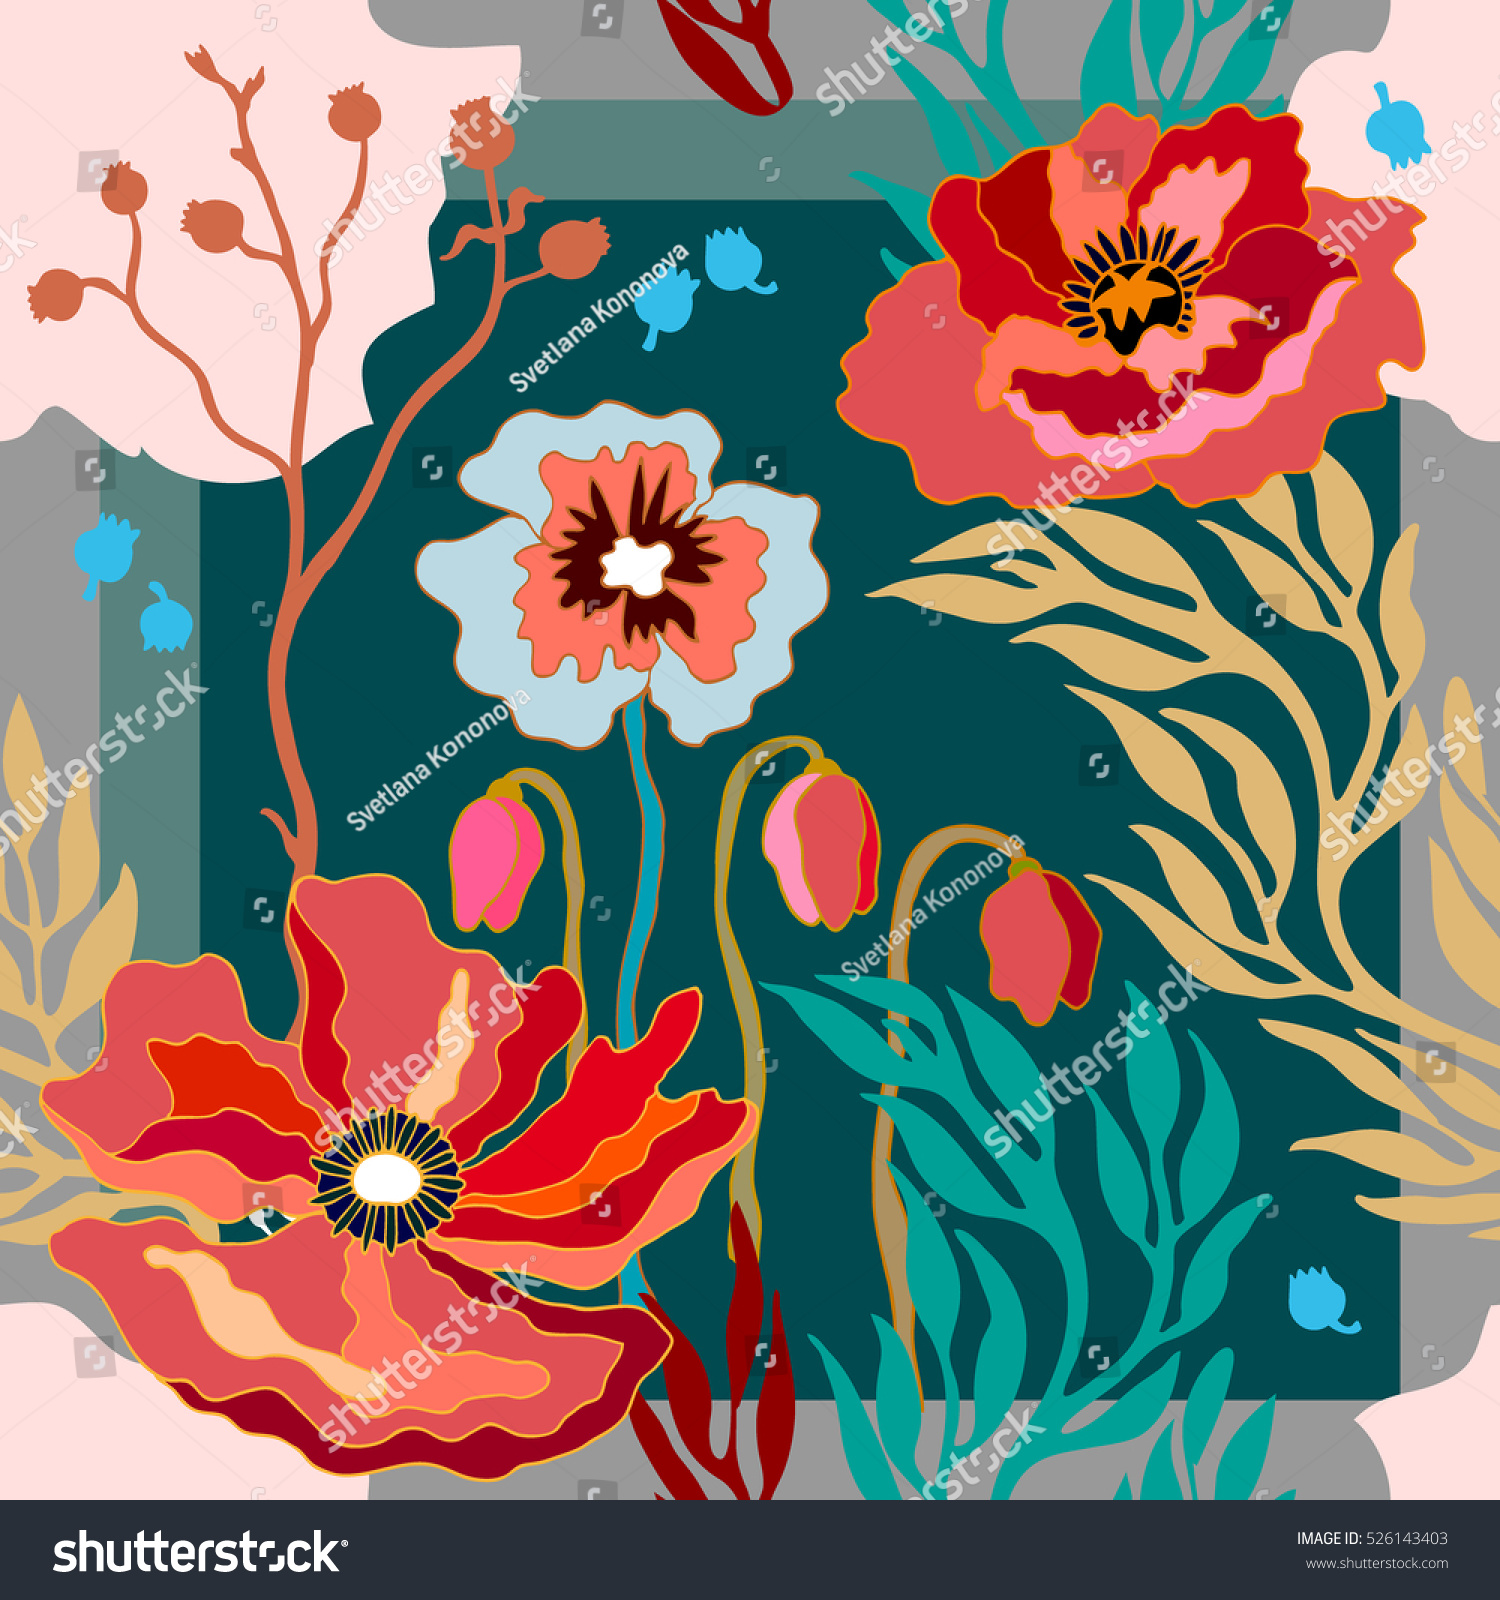 Silk scarf with blooming poppies. Abstract seamless vector pattern with  hand drawn floral elements. 1950s-1960s motifs. Retro textile design  collection. 7ce492c56c7